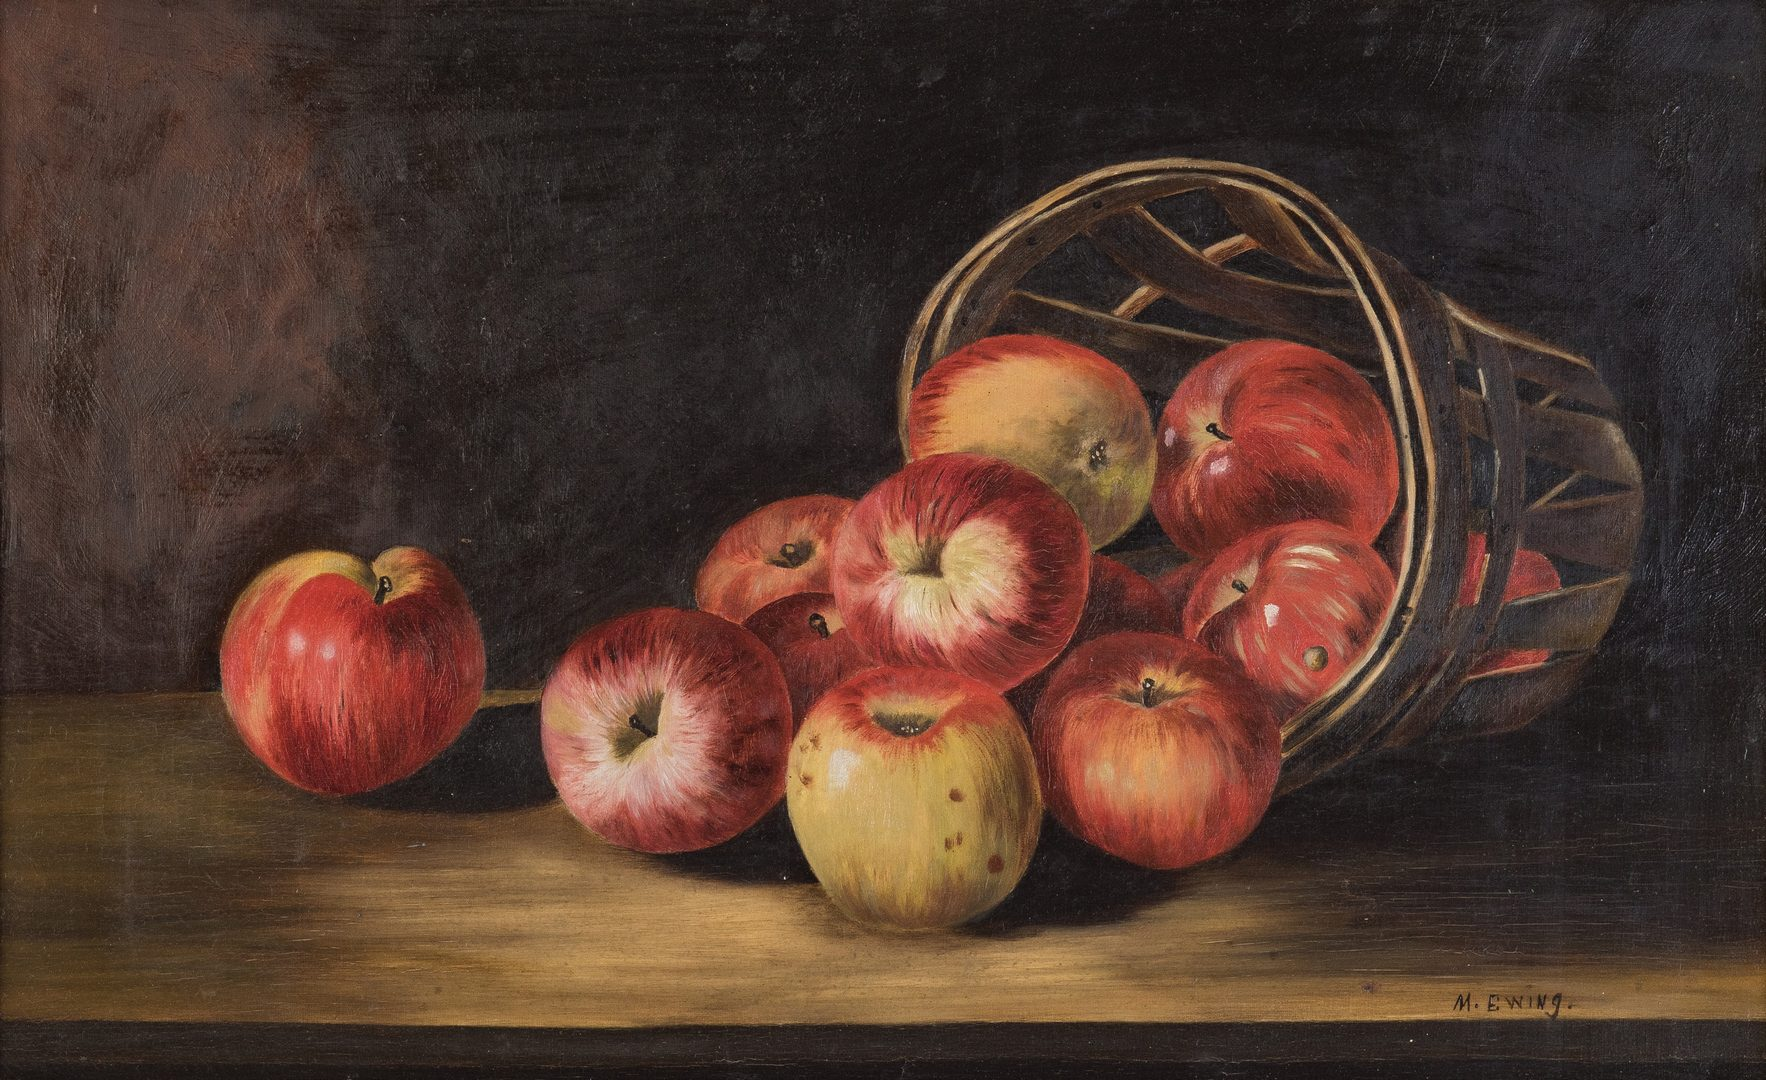 Lot 372: Still Life with Apples O/C, signed Ewing